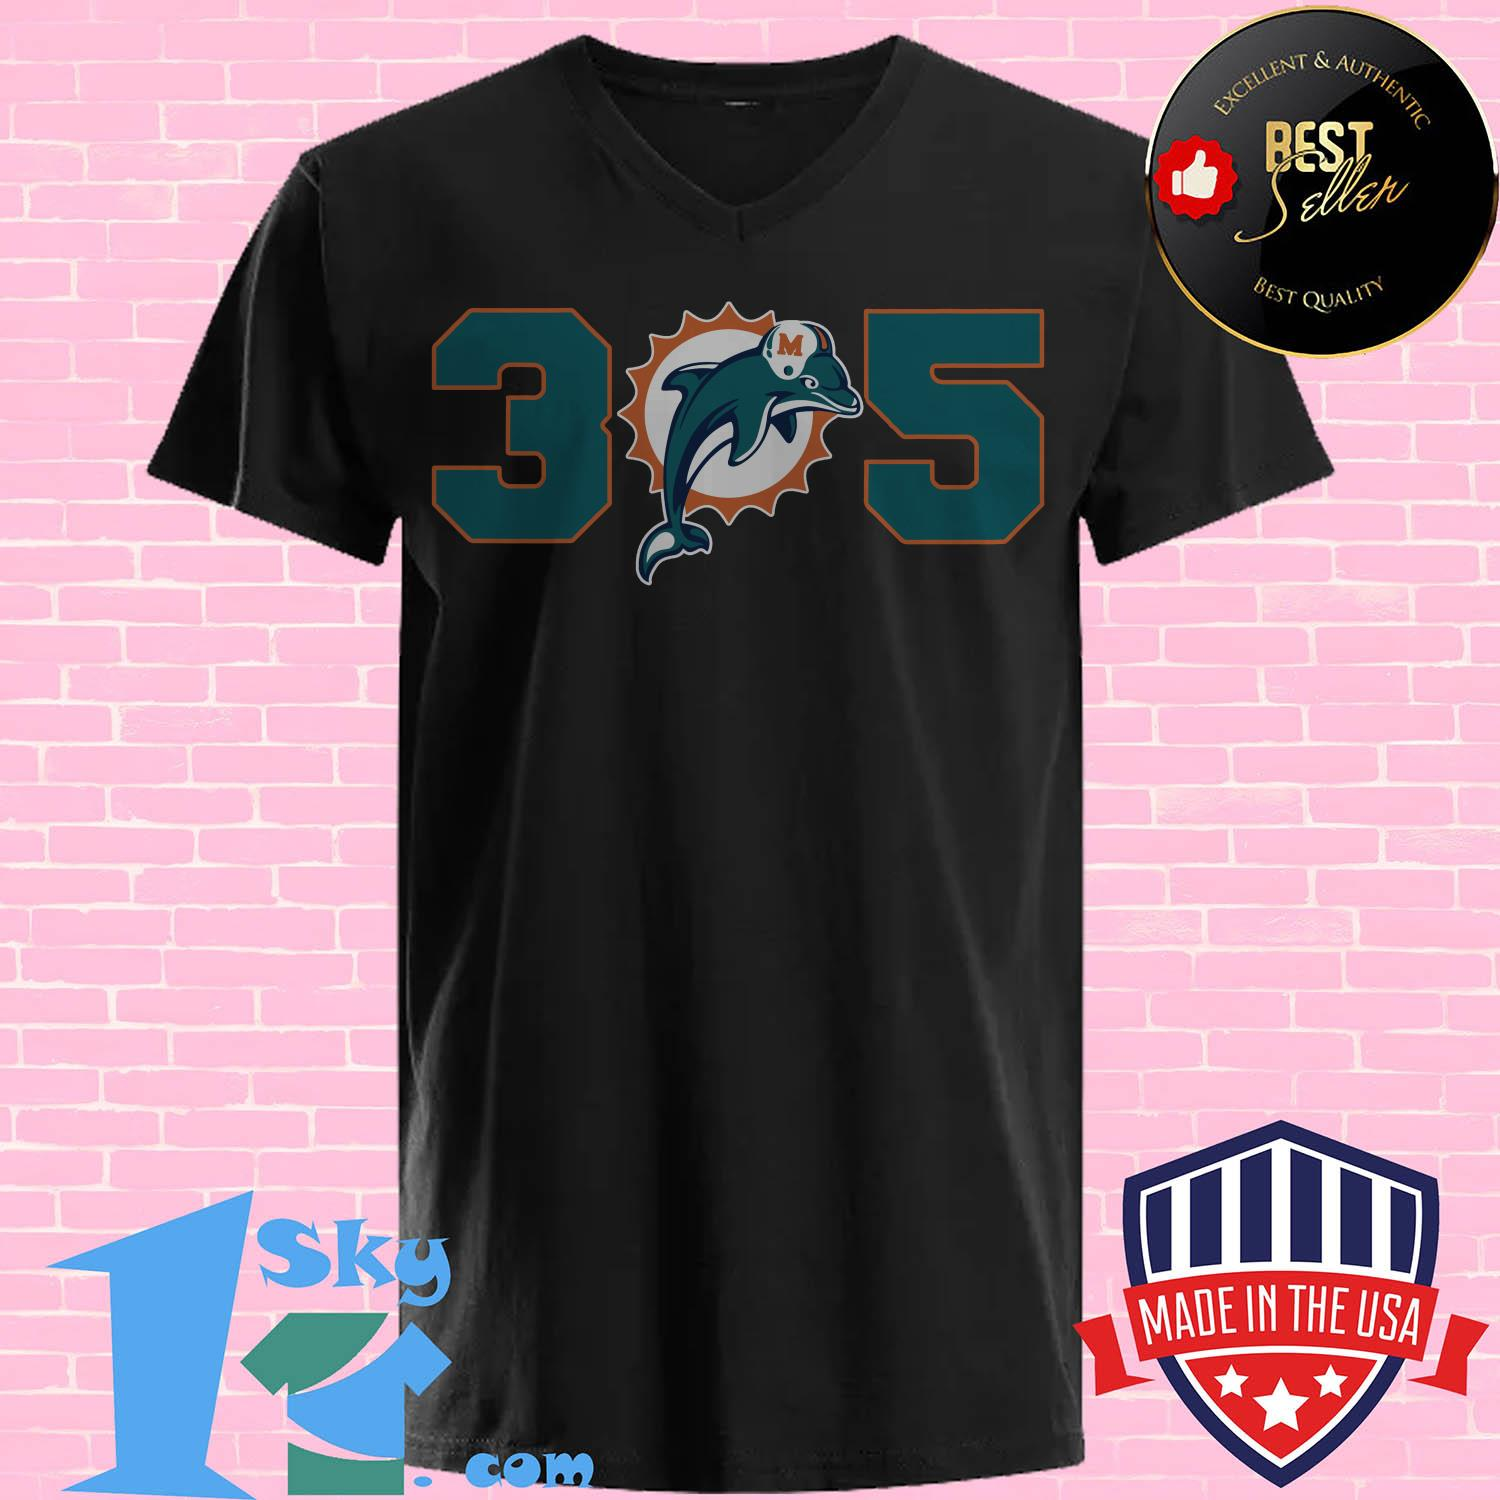 official 305 miami dolphins v neck - Official 305 Miami Dolphins shirt